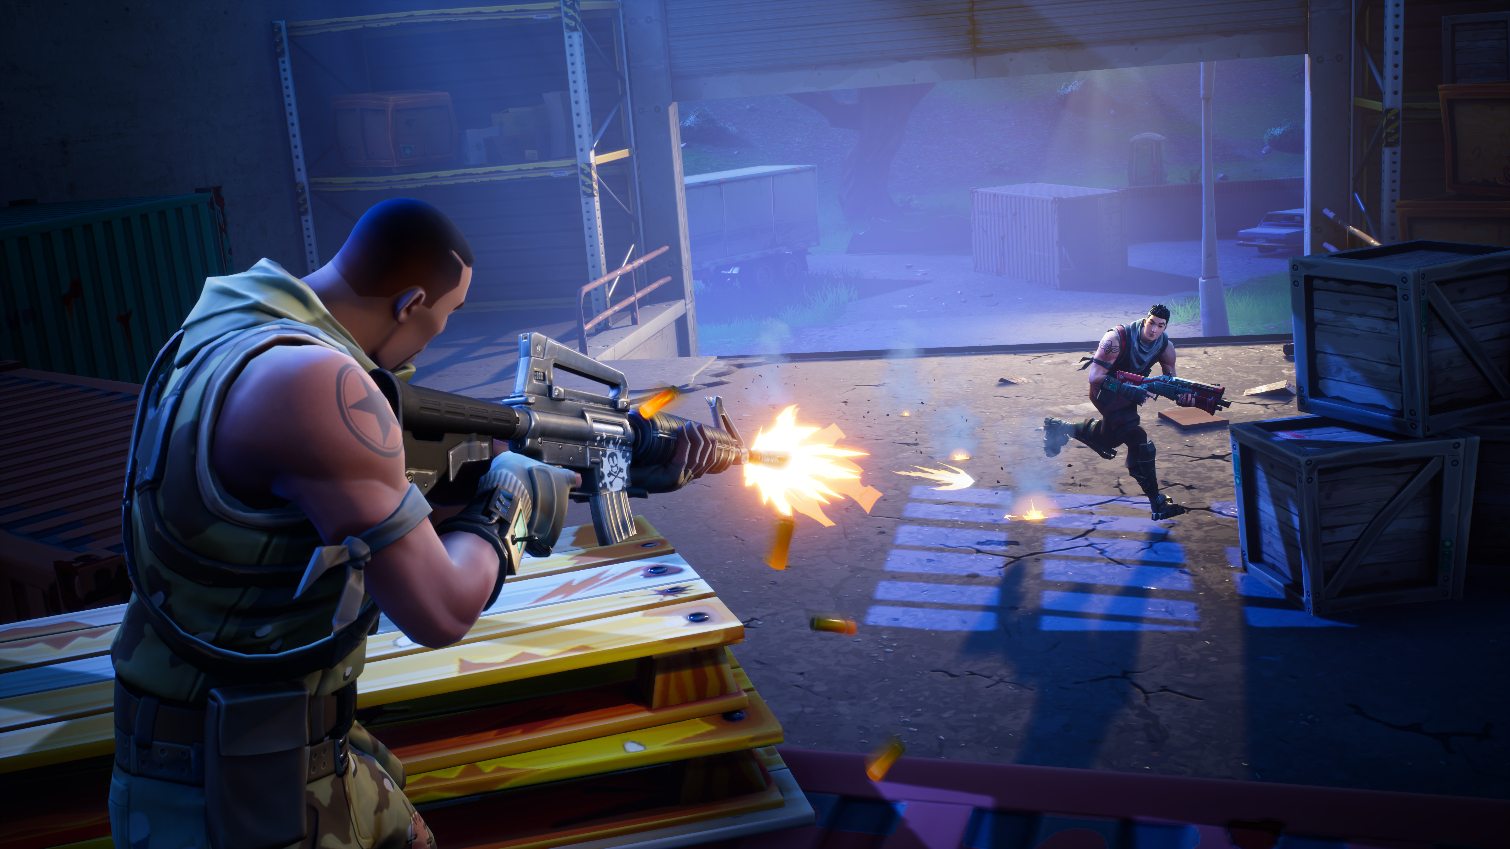 Is Fortnite Worth Buying? A Guide to Free and Paid Versions